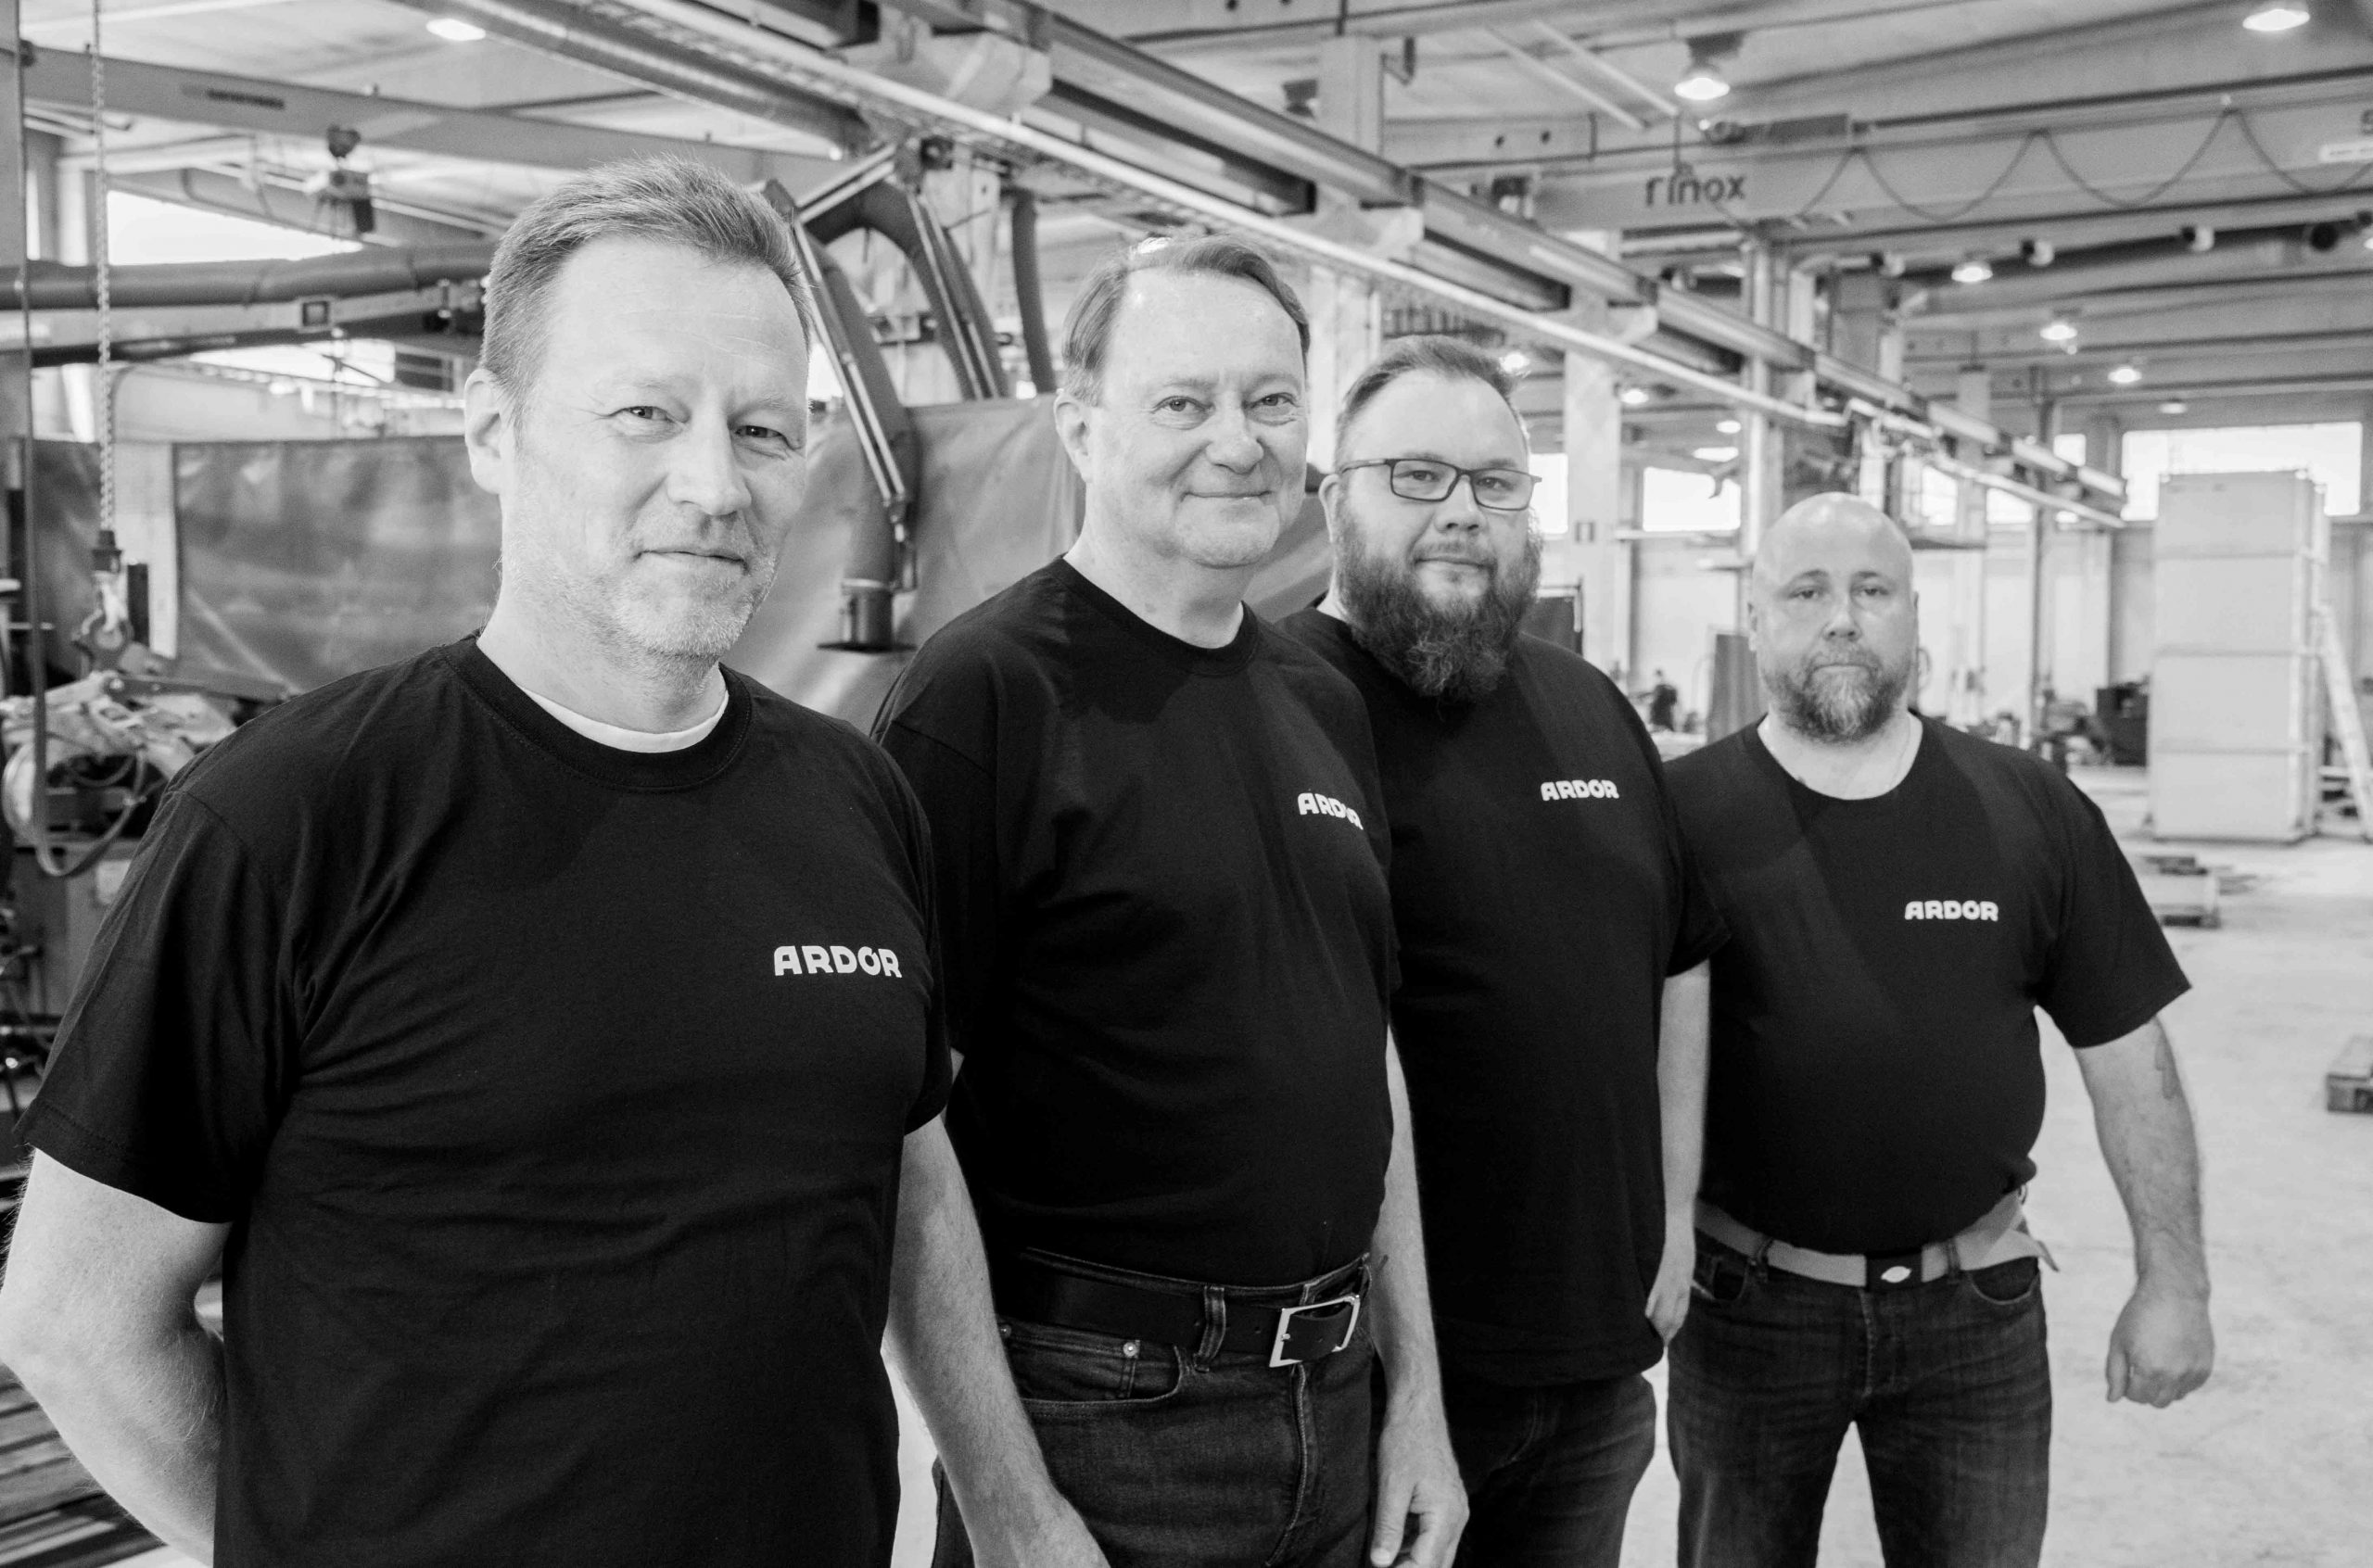 Ardor strengthens its strategic know-how: Jukka Nikkanen and Olli Manner appointed to the board of directors